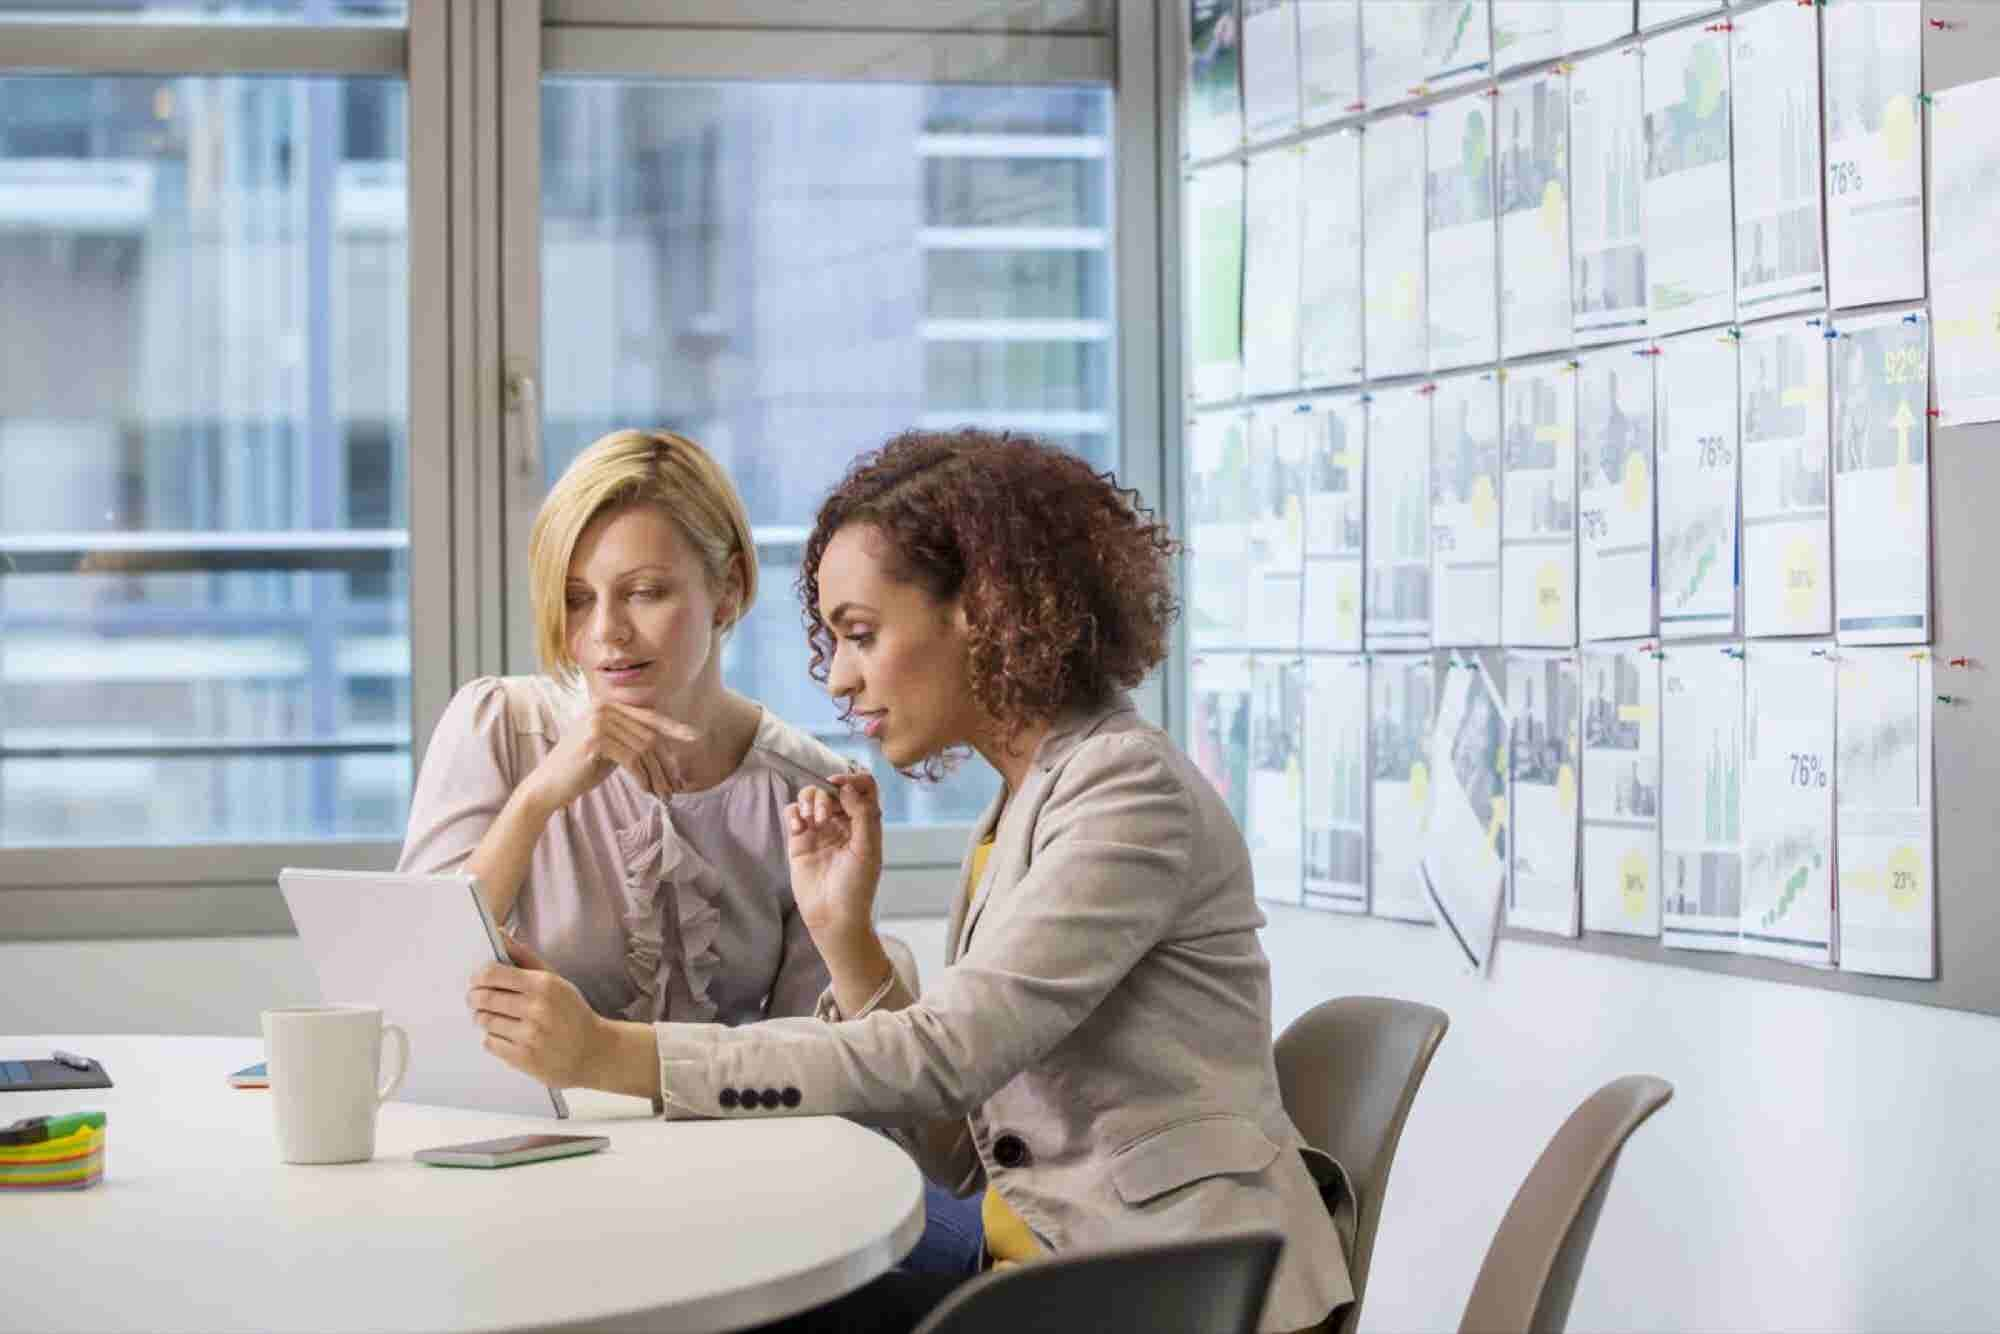 The Major Challenges Faced by Women in the Commercial Real-Estate Industry